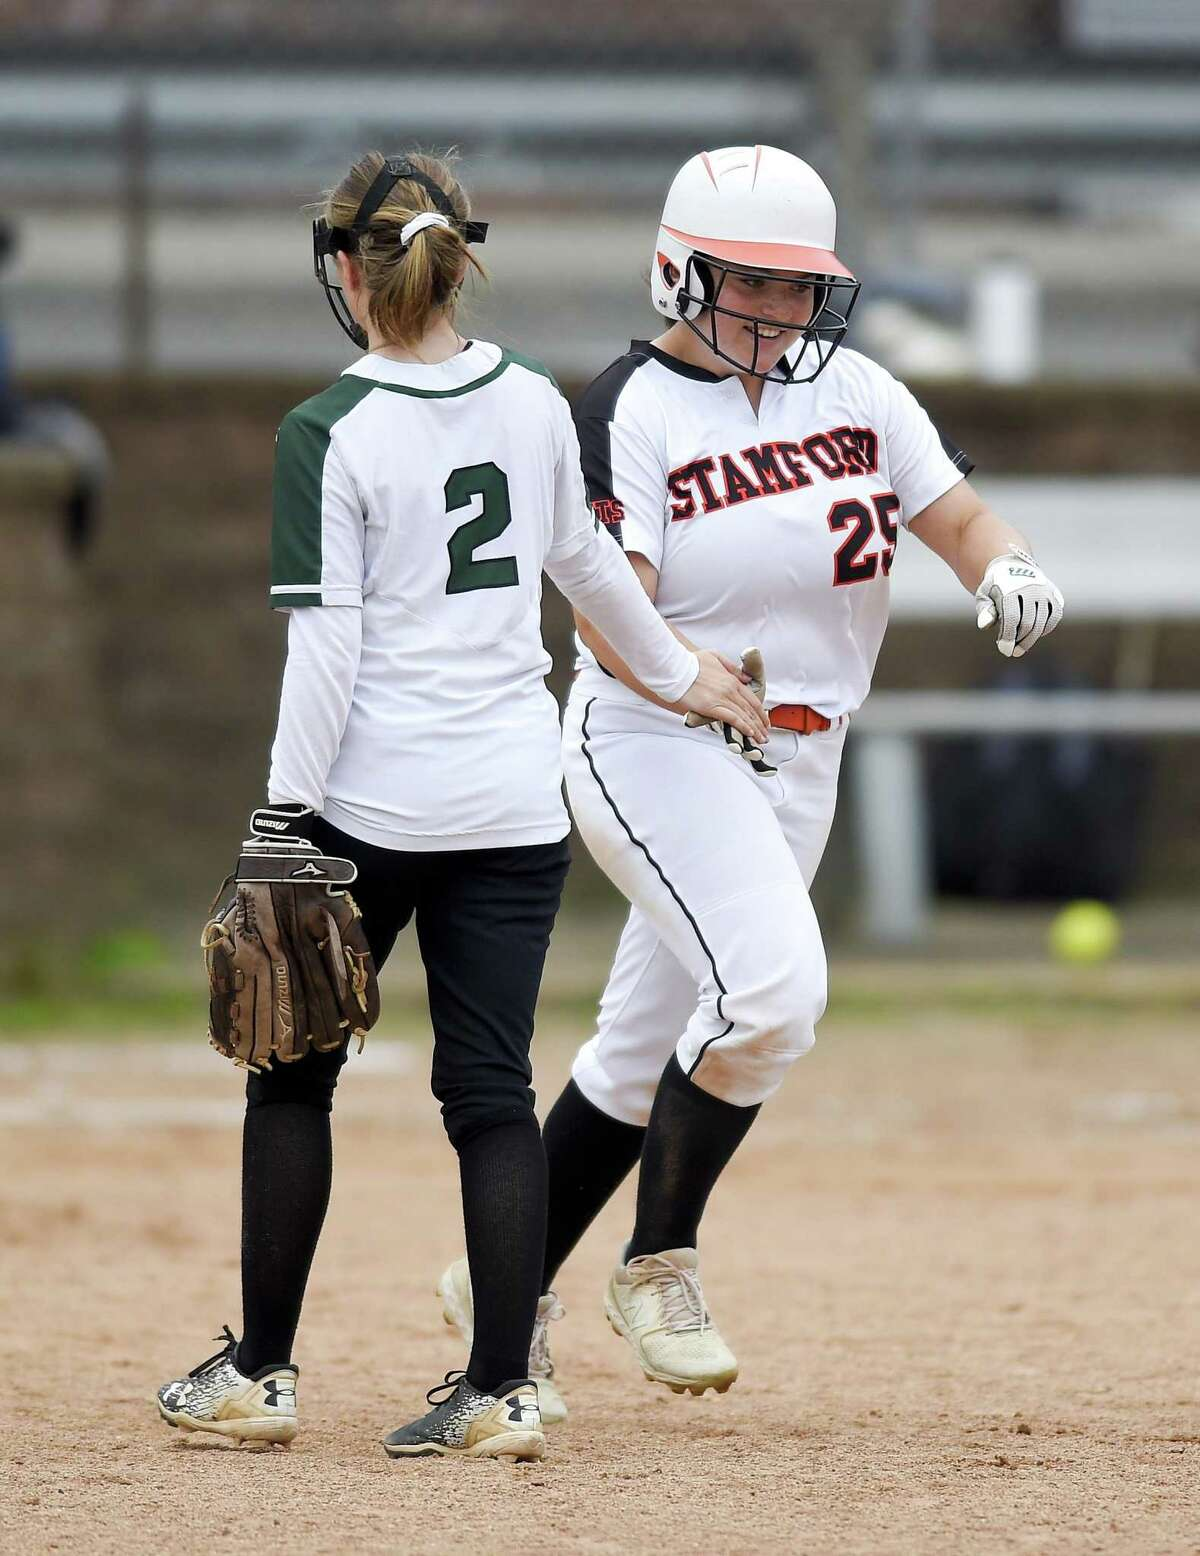 Stamford's Abby Hogan celebrates with New Milford's Sarah Mickelson as Hogan rounds the bases following a grand slam in the fifth inning in the Class LL state tournament at Stamford on Wednesday. Stamford won, 10-0.